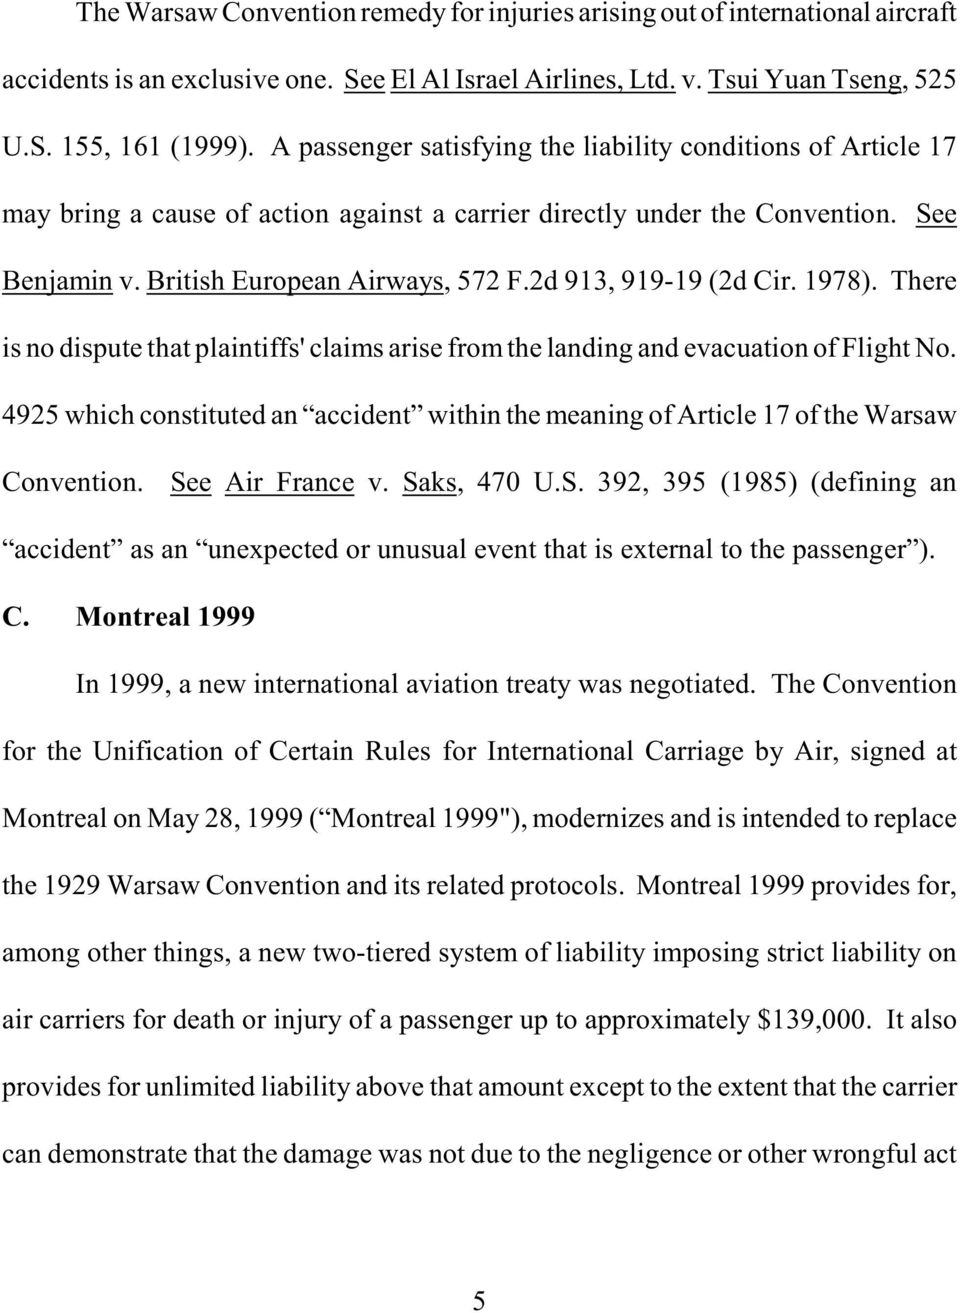 2d 913, 919-19 (2d Cir. 1978). There is no dispute that plaintiffs' claims arise from the landing and evacuation of Flight No.